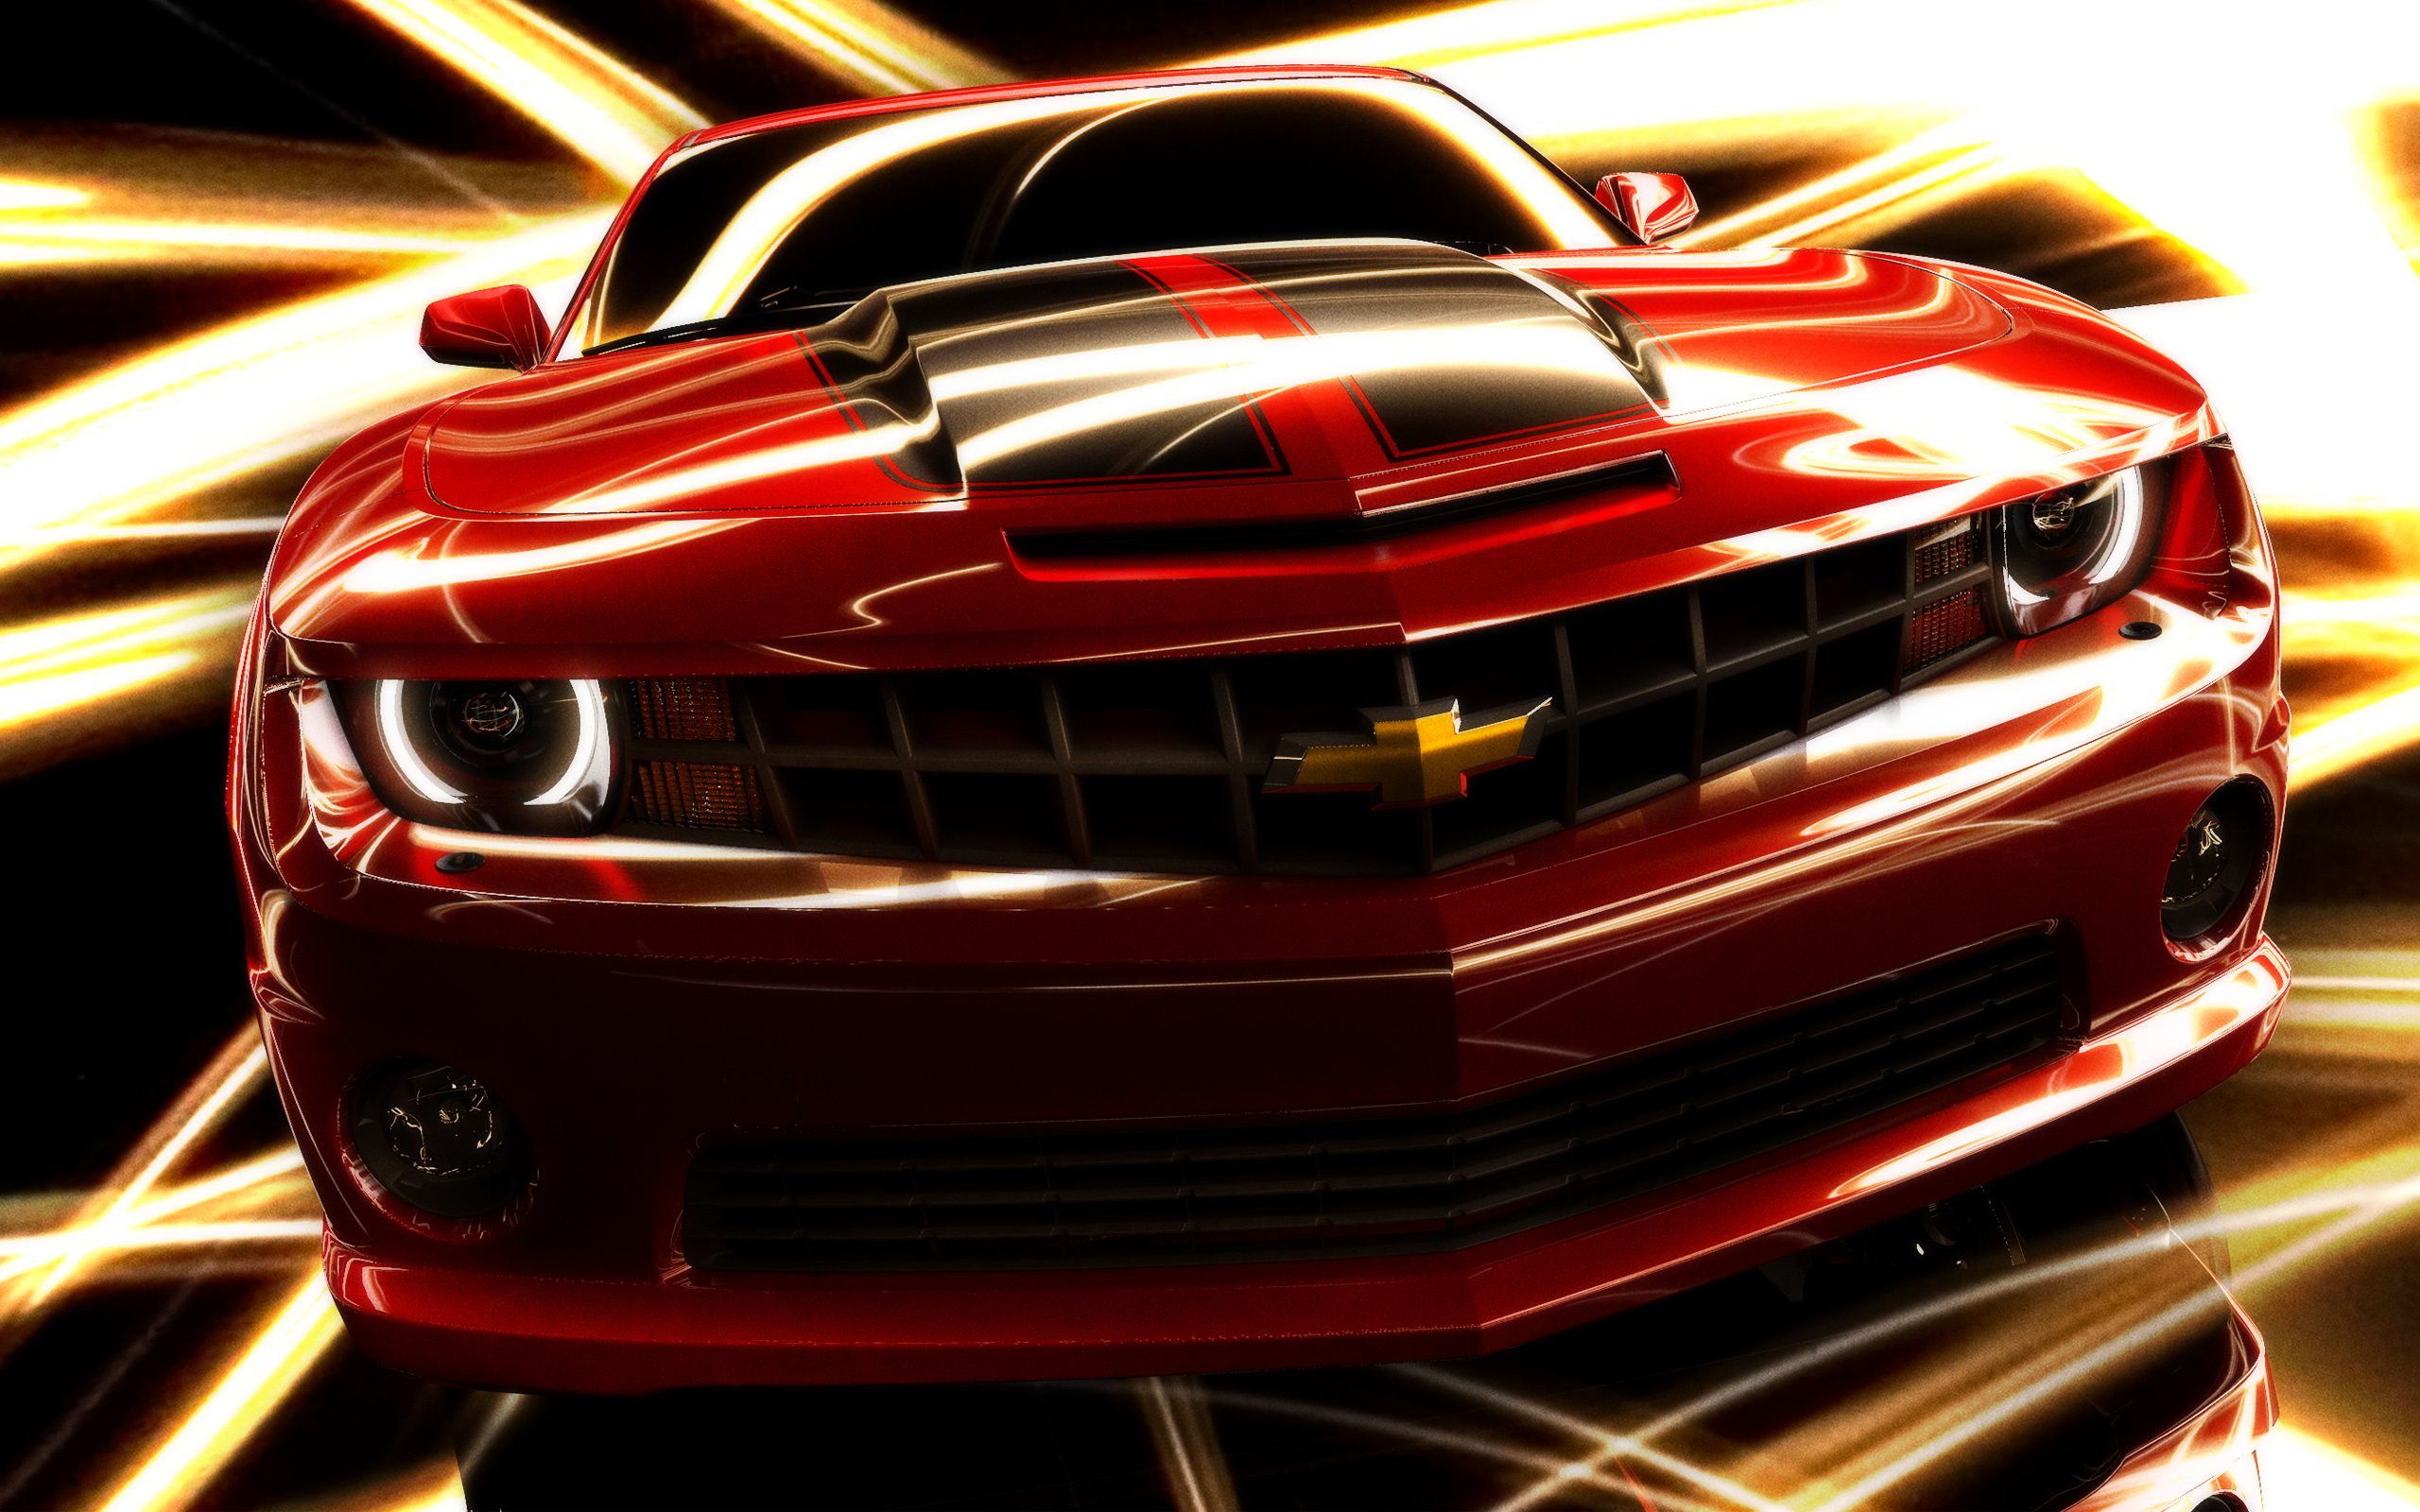 GM Camaro Wallpaper HD Car Wallpapers 2560x1600